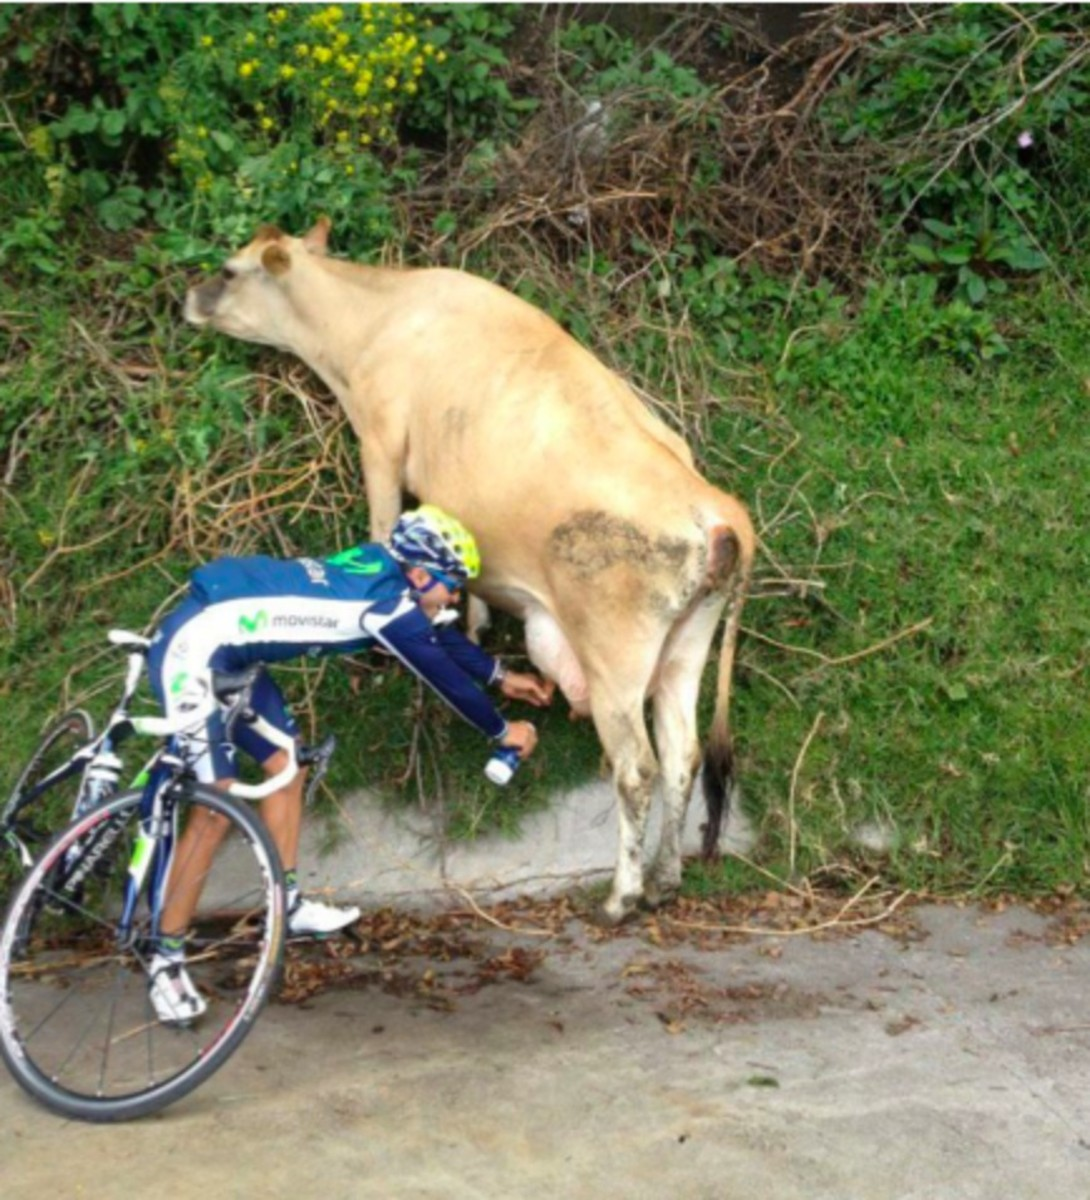 Thirsty? Milk a roadside cow!